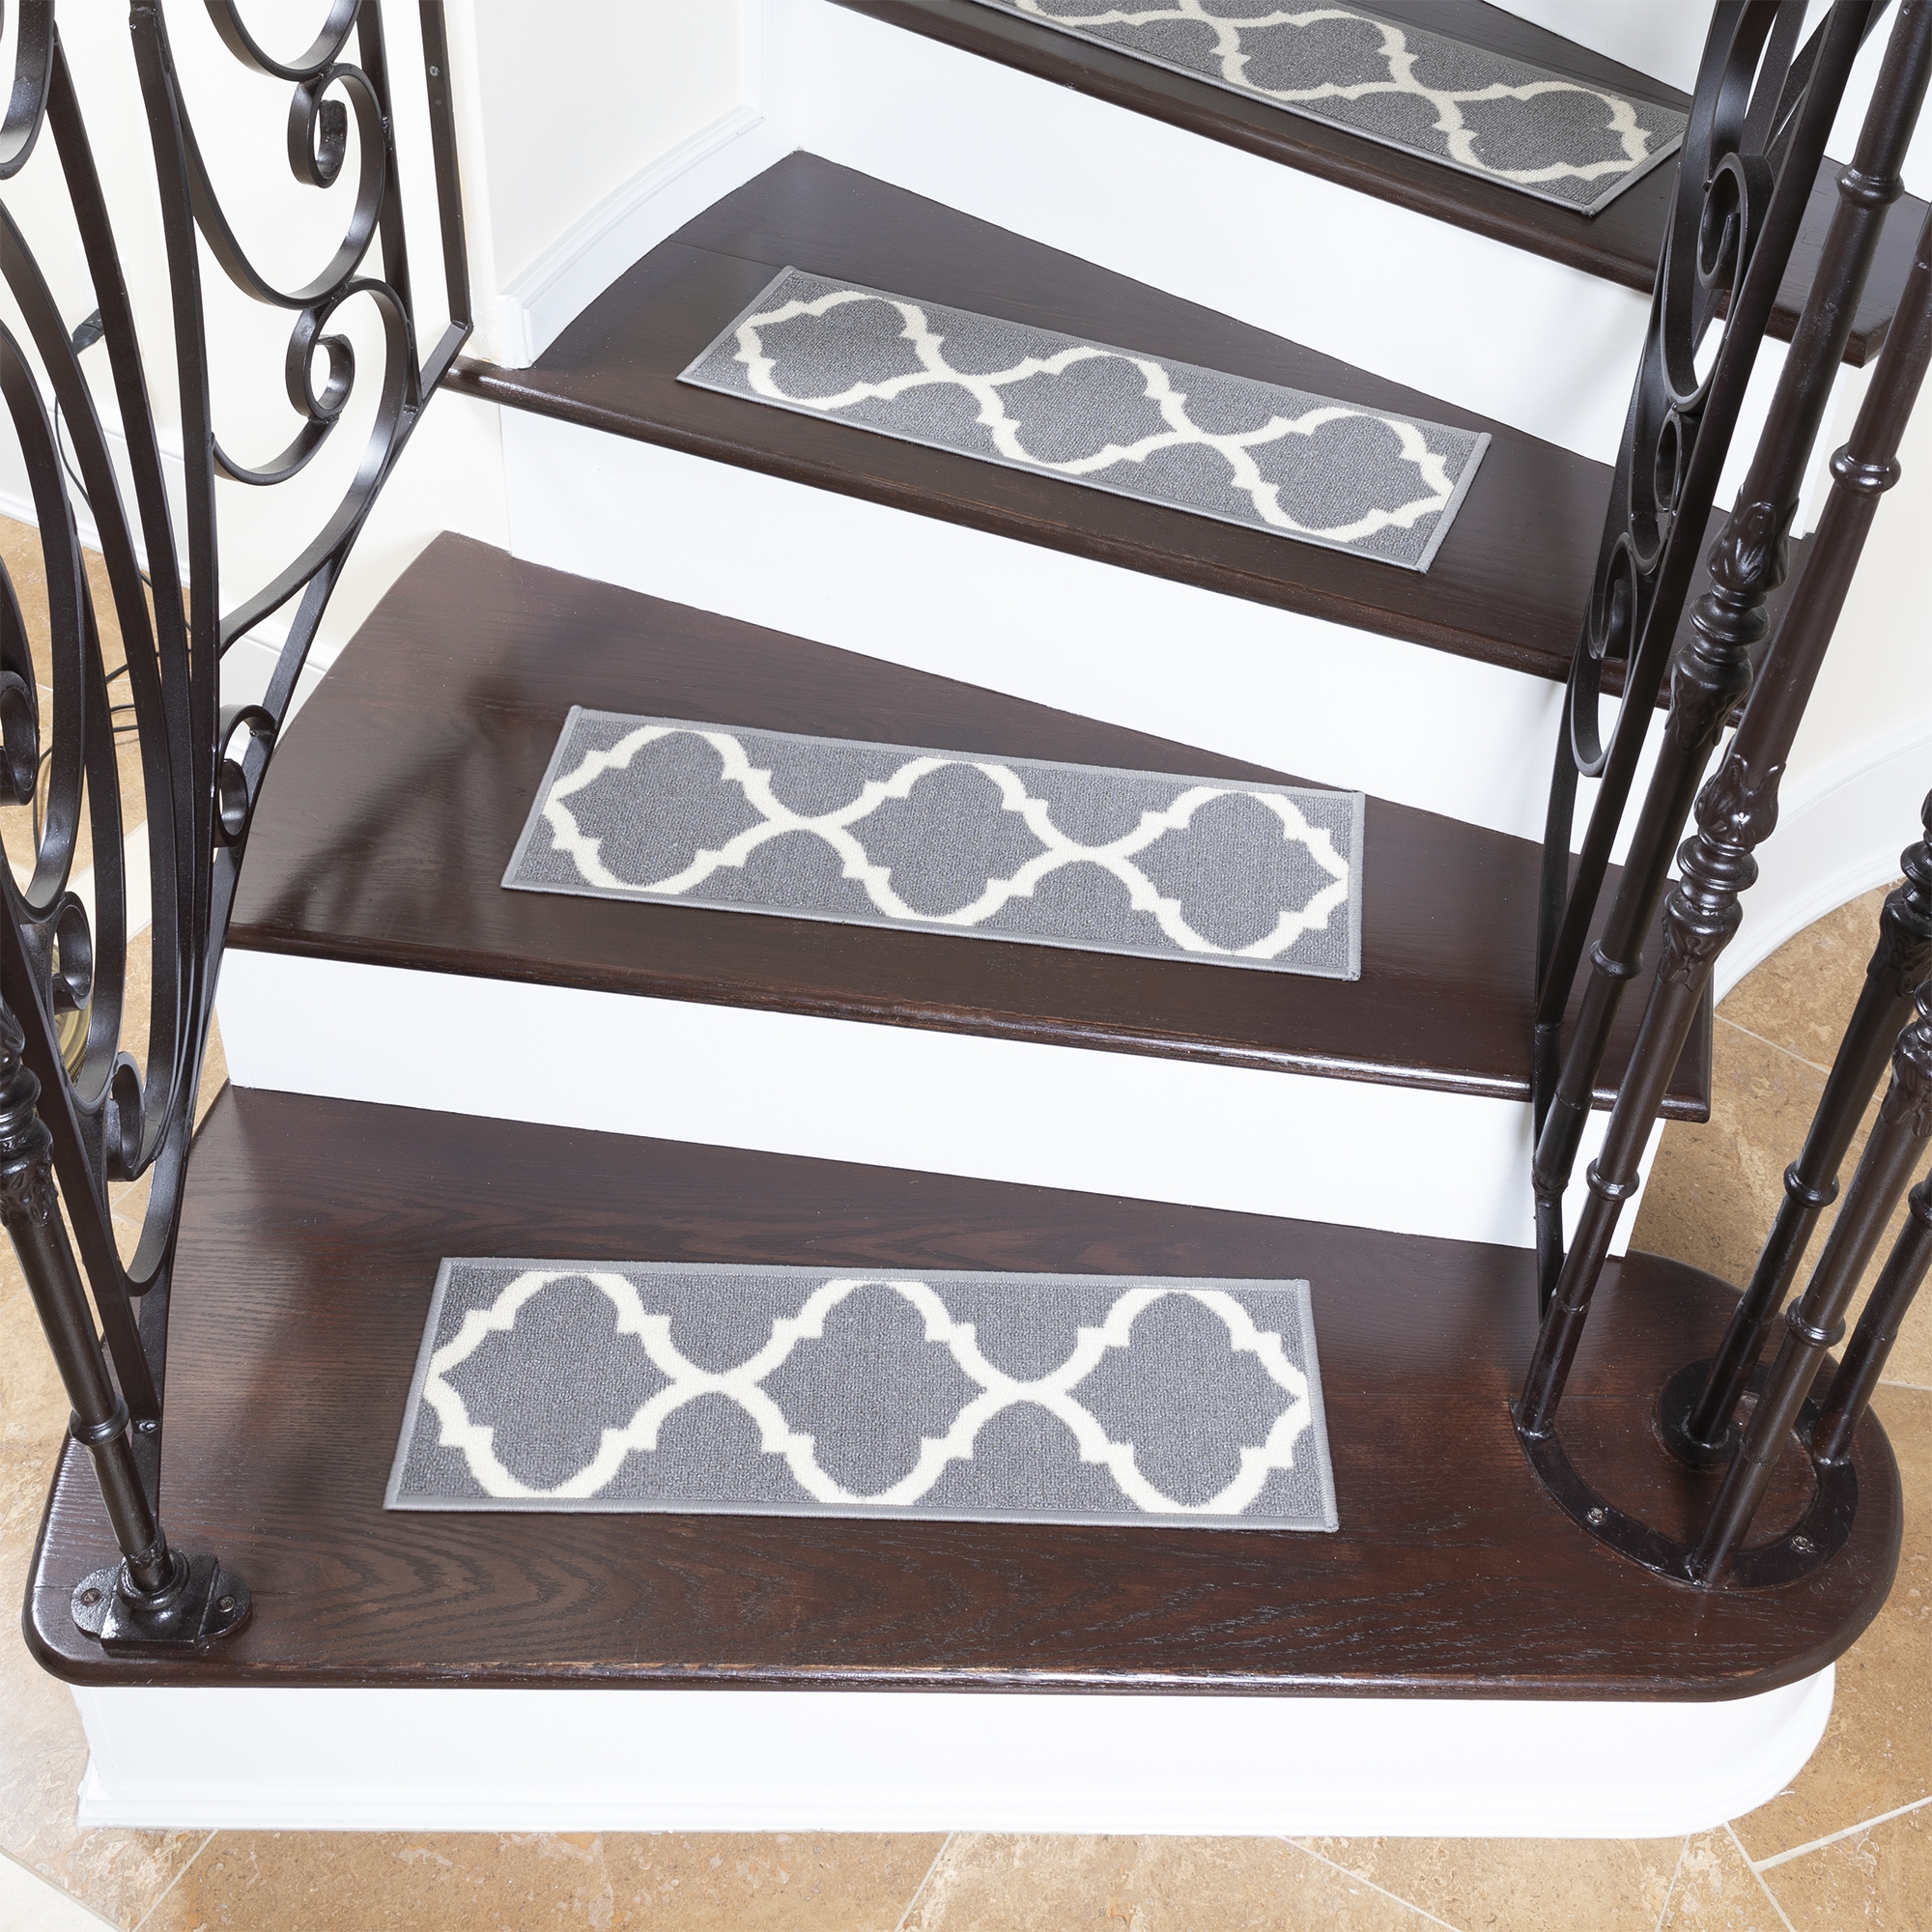 Ottomanson Softy Stair Treads Solid Skid Resistant Rubber Backing | Ottomanson Softy Stair Treads | Carpet Stair | Softy Carved | Amazon | Softy Collection | Non Slip Stair